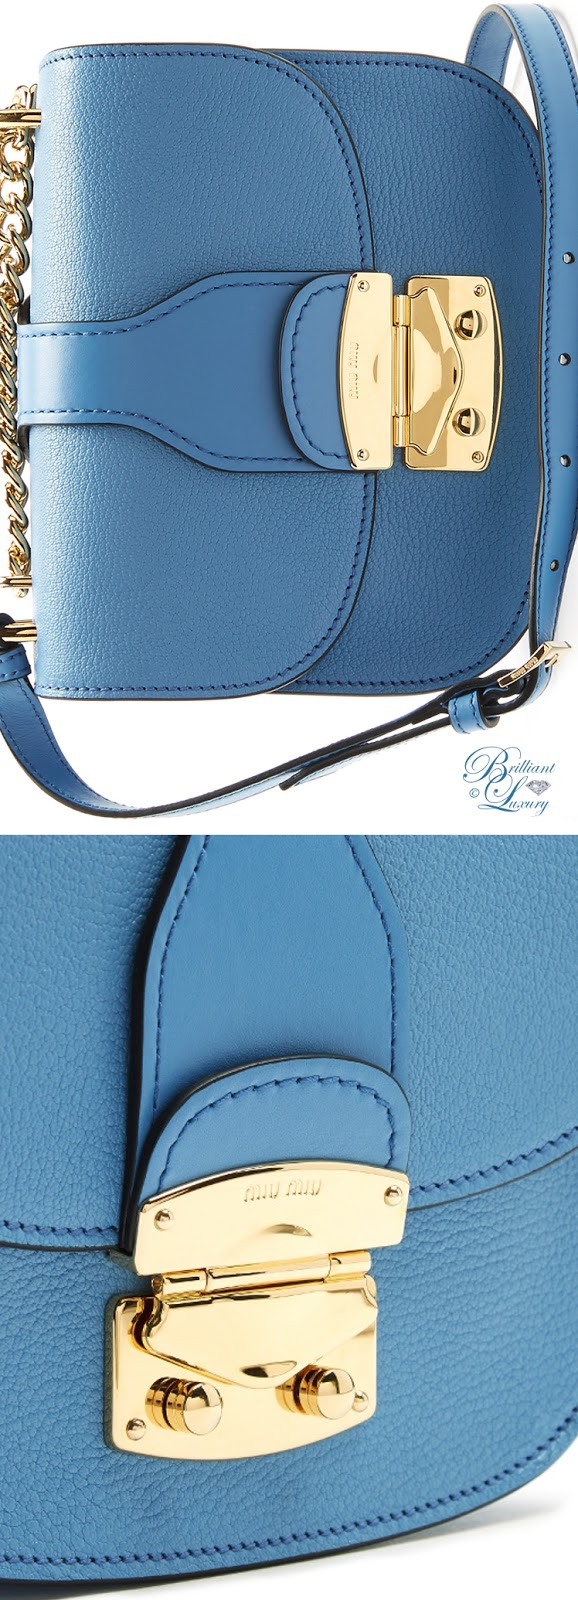 Brilliant Luxury ♦ Miu Miu Chain-strap leather cross-body bag